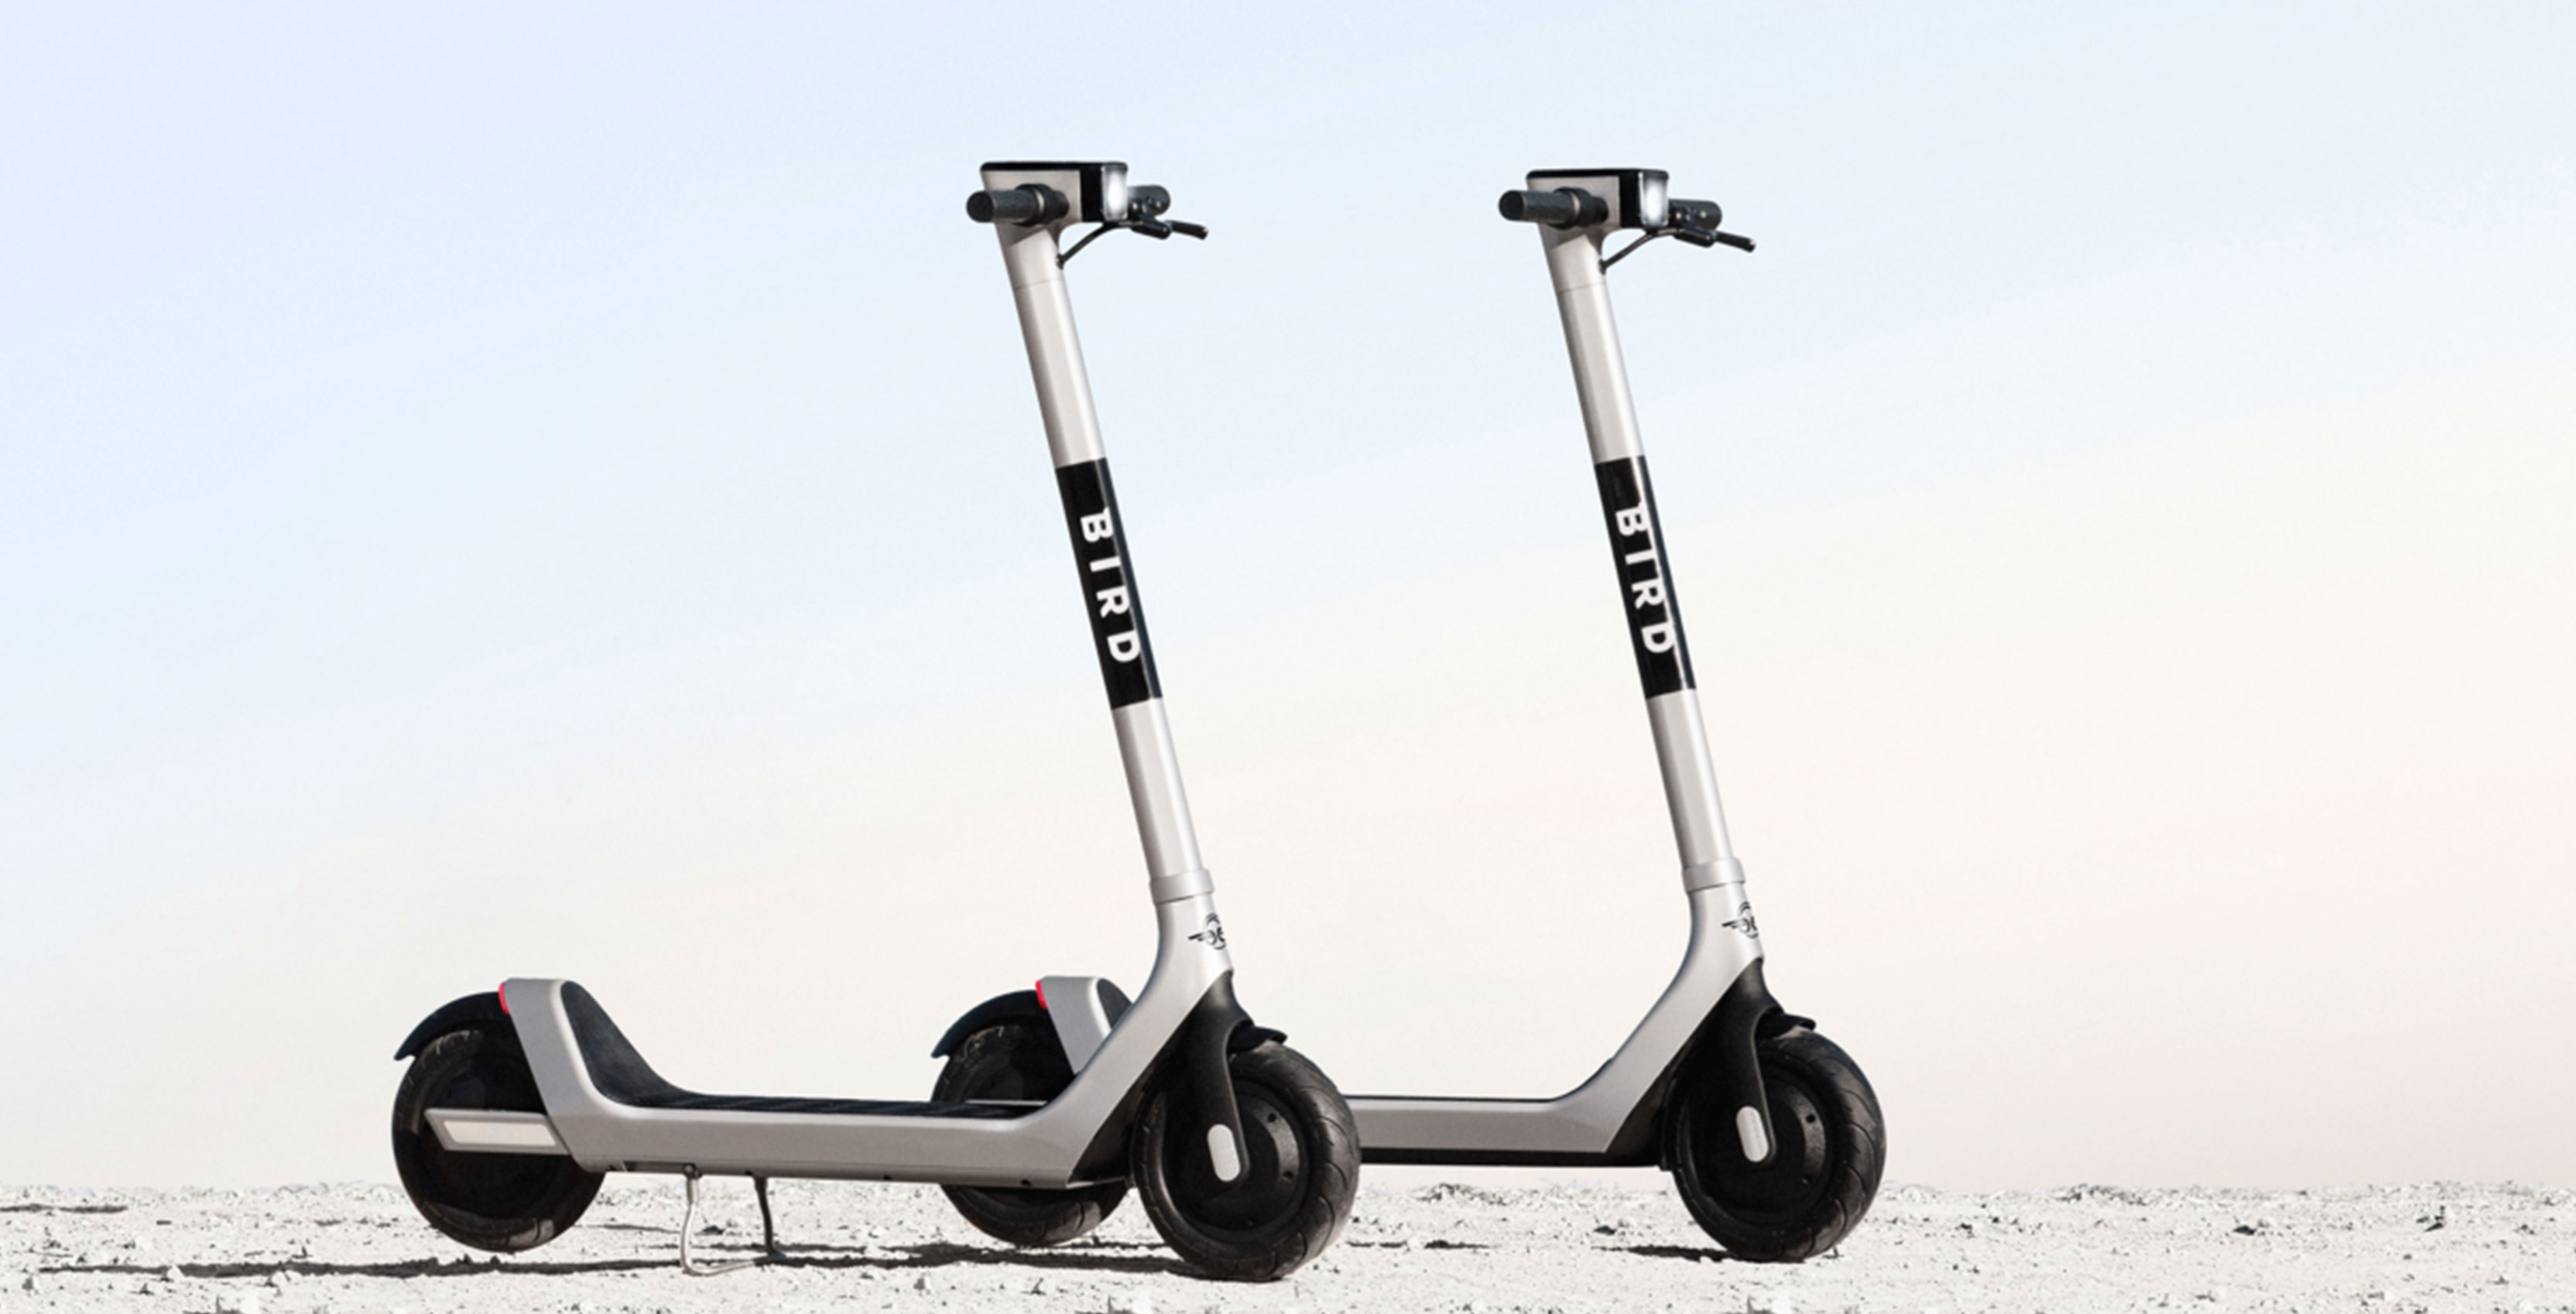 Bird's dockless e-scooters are now available in Edmonton